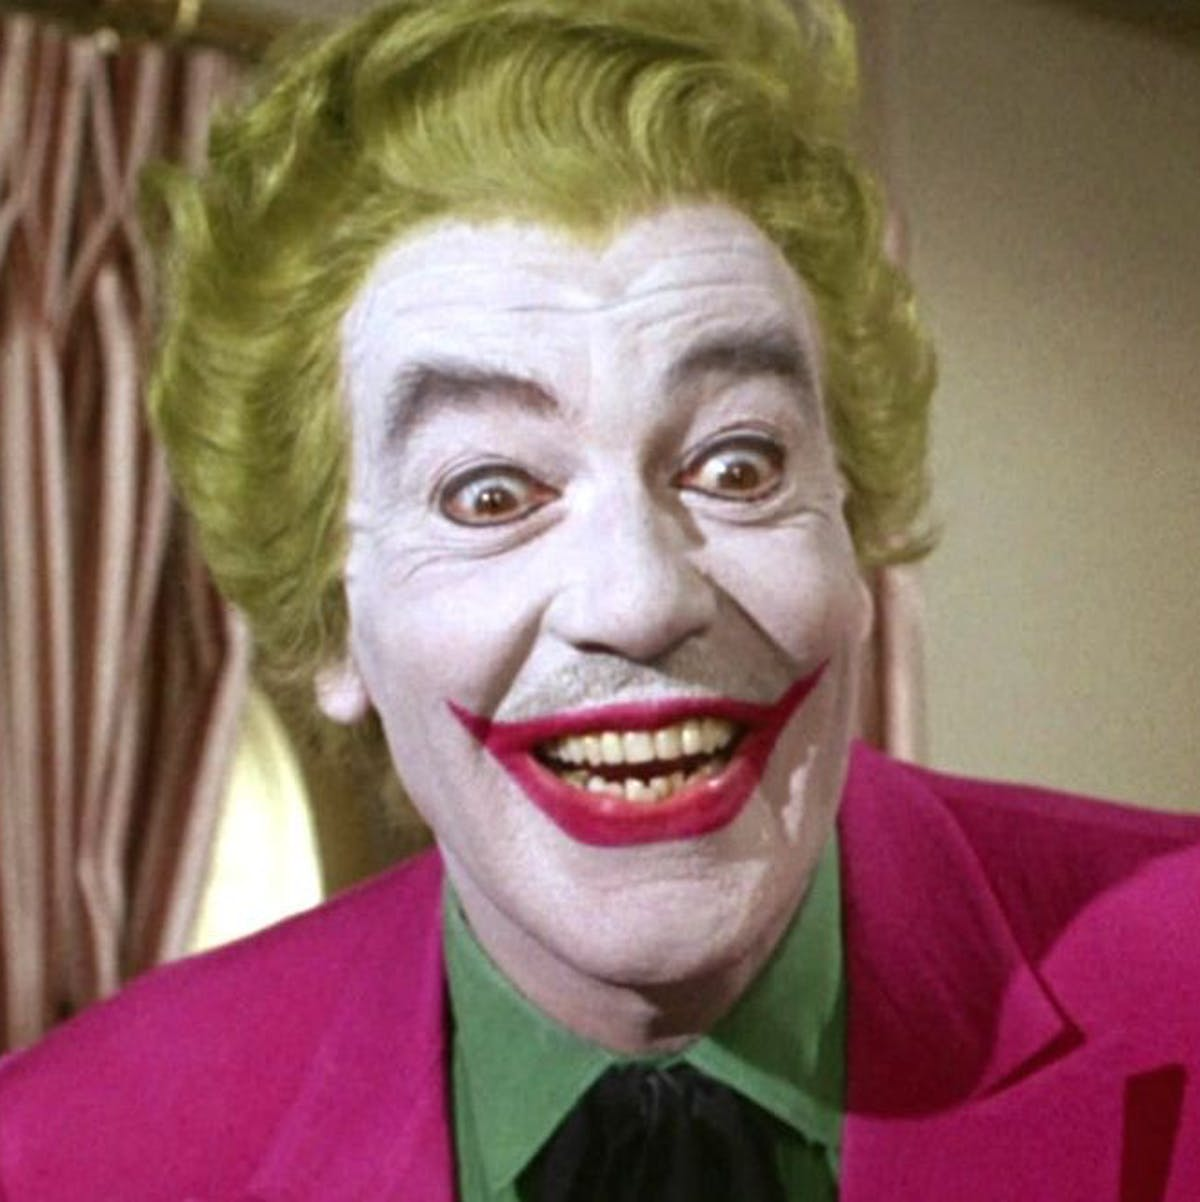 'Joker' can't compete with Cesar Romero's goofy charm in 'Batman' (1966)